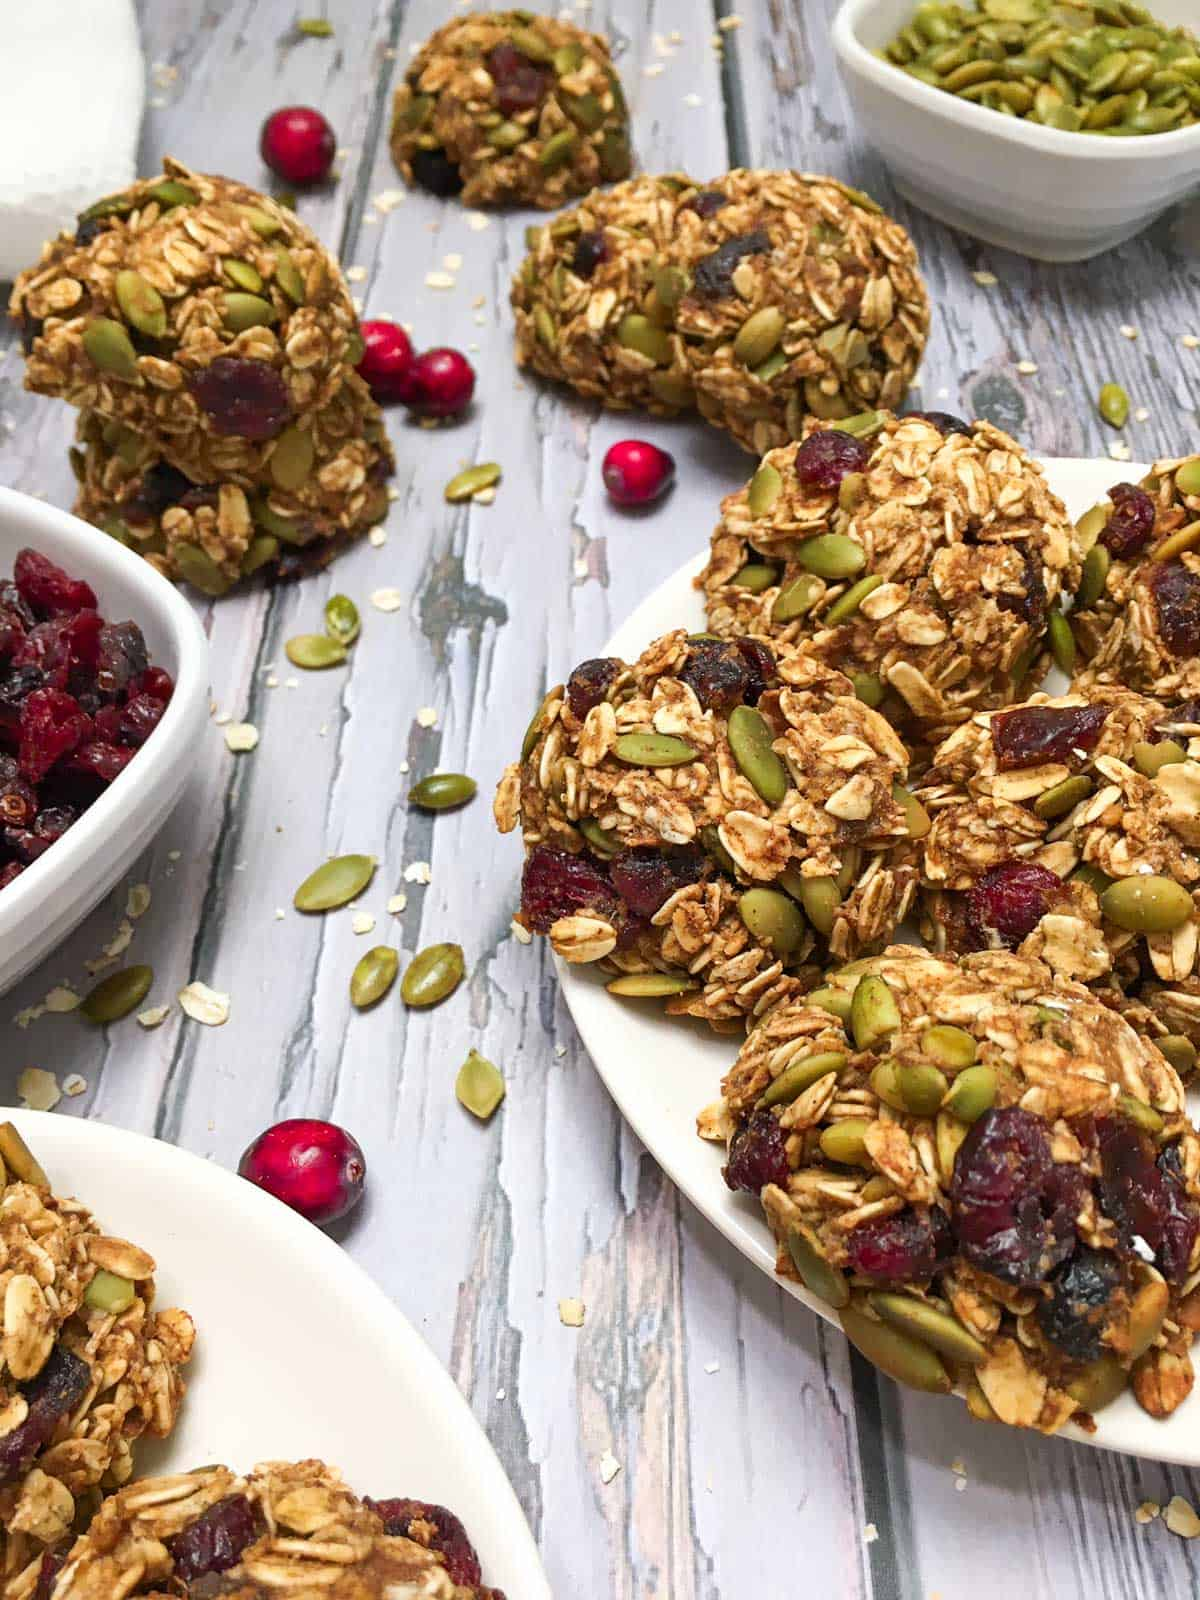 Cranberry oatmeal cookies on white plate with bowls of cranberries and pumpkin seeds around it.